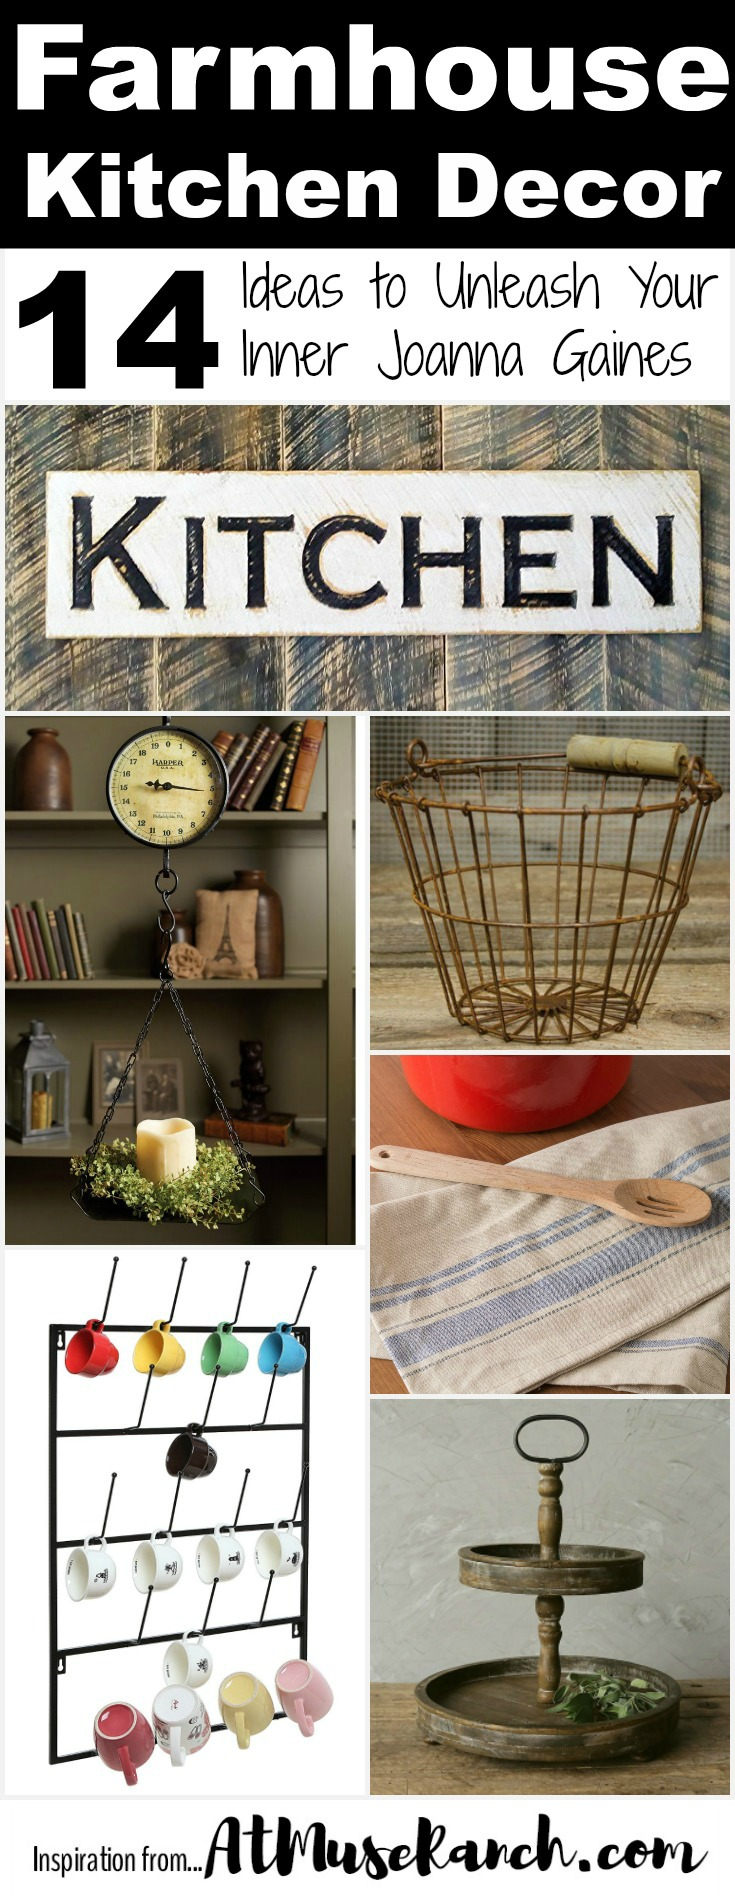 Farmhouse Kitchen Decor Just Like Joanna Gaines